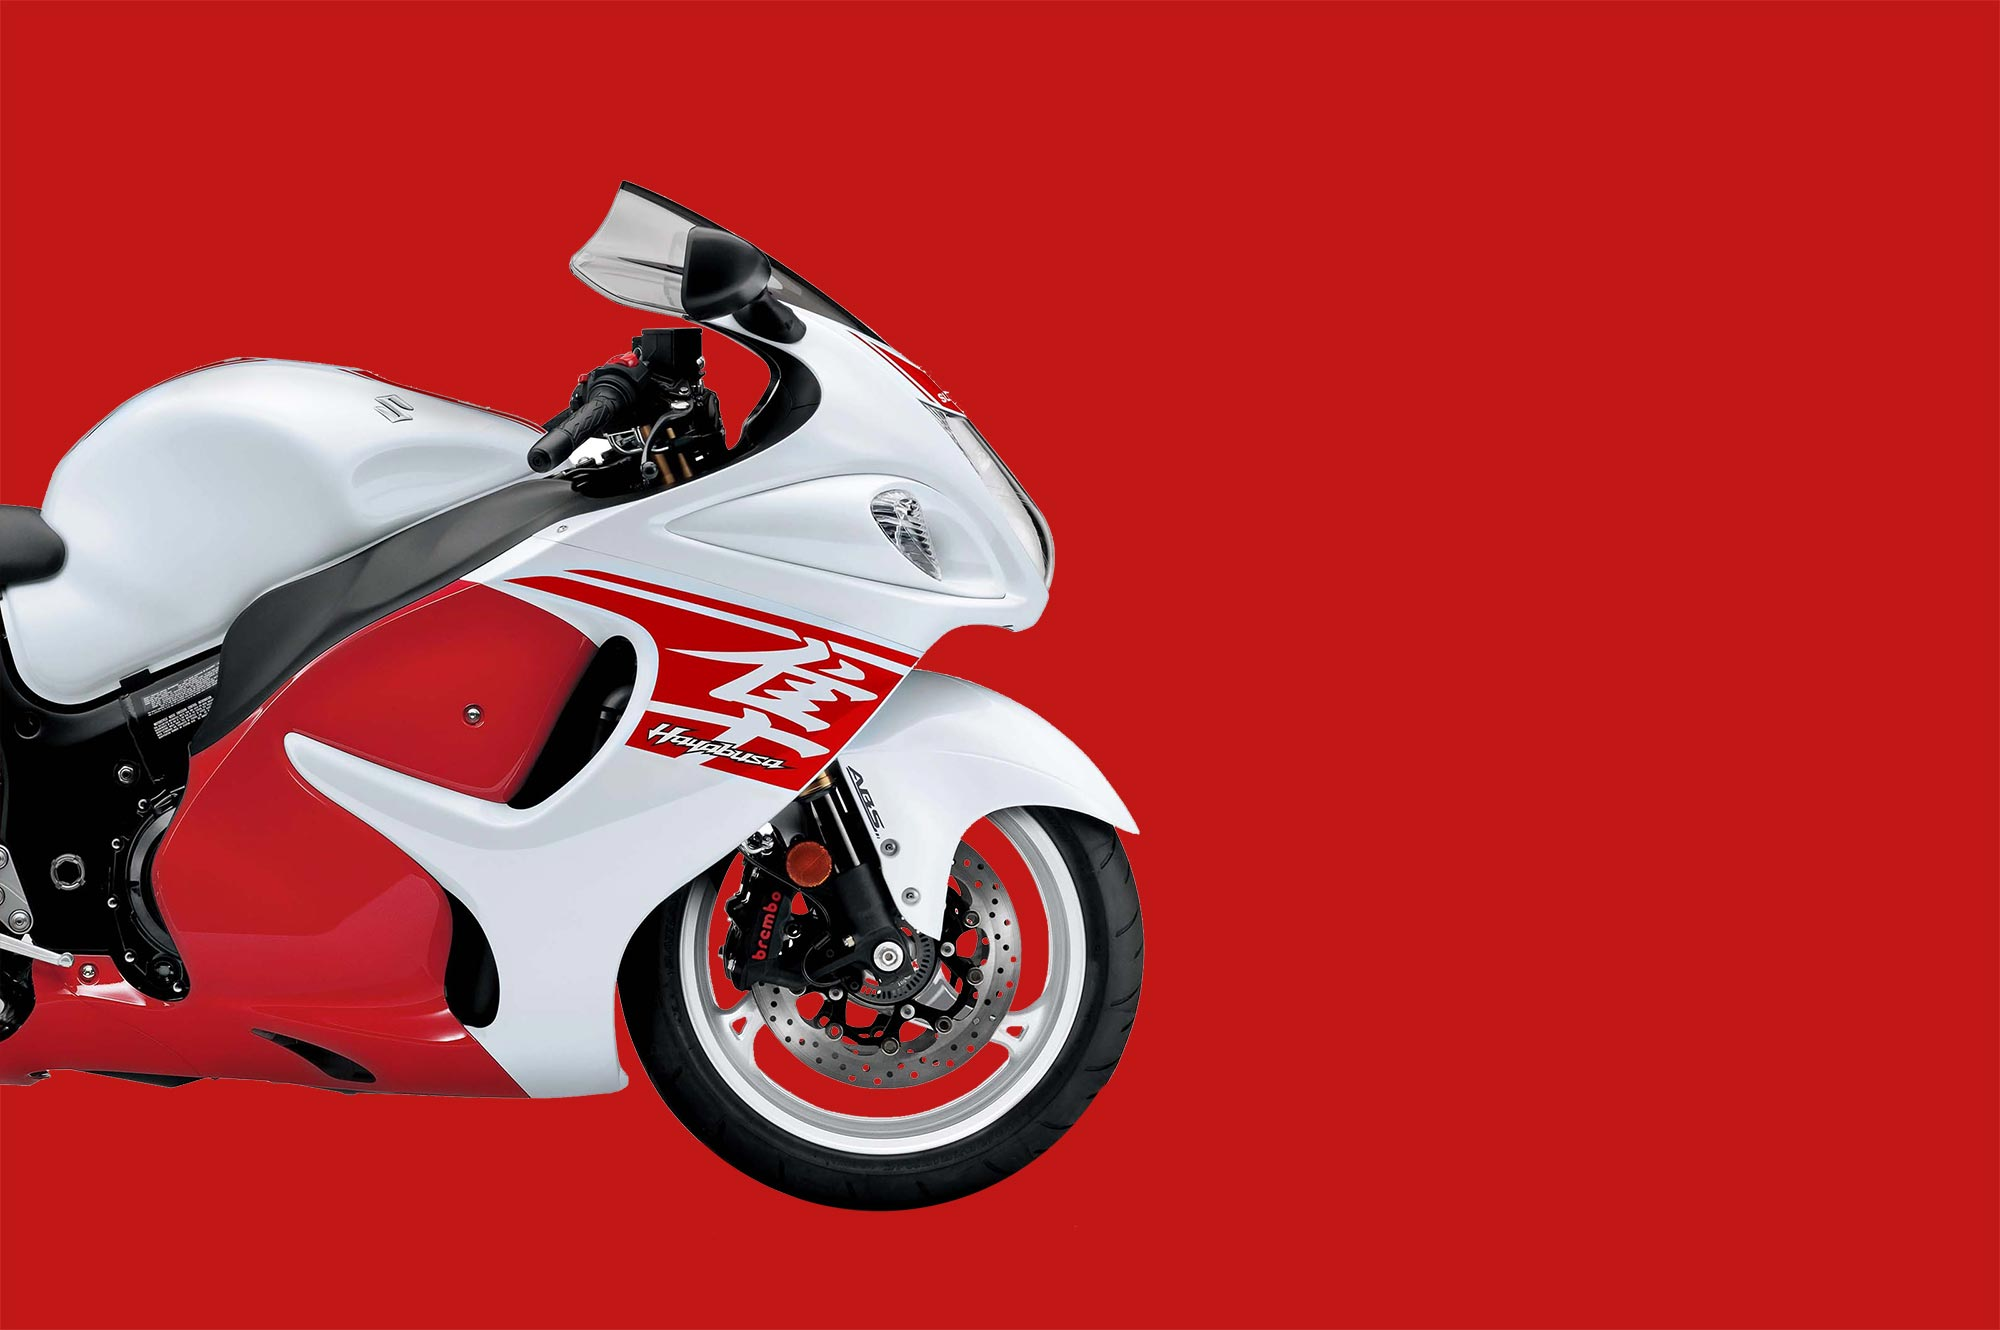 A New Suzuki Hayabusa Is Coming, This Much We Know. What That Bike Will Be,  What Features It Will Have, And What It Will Look Like Though Have Been  Open To ...